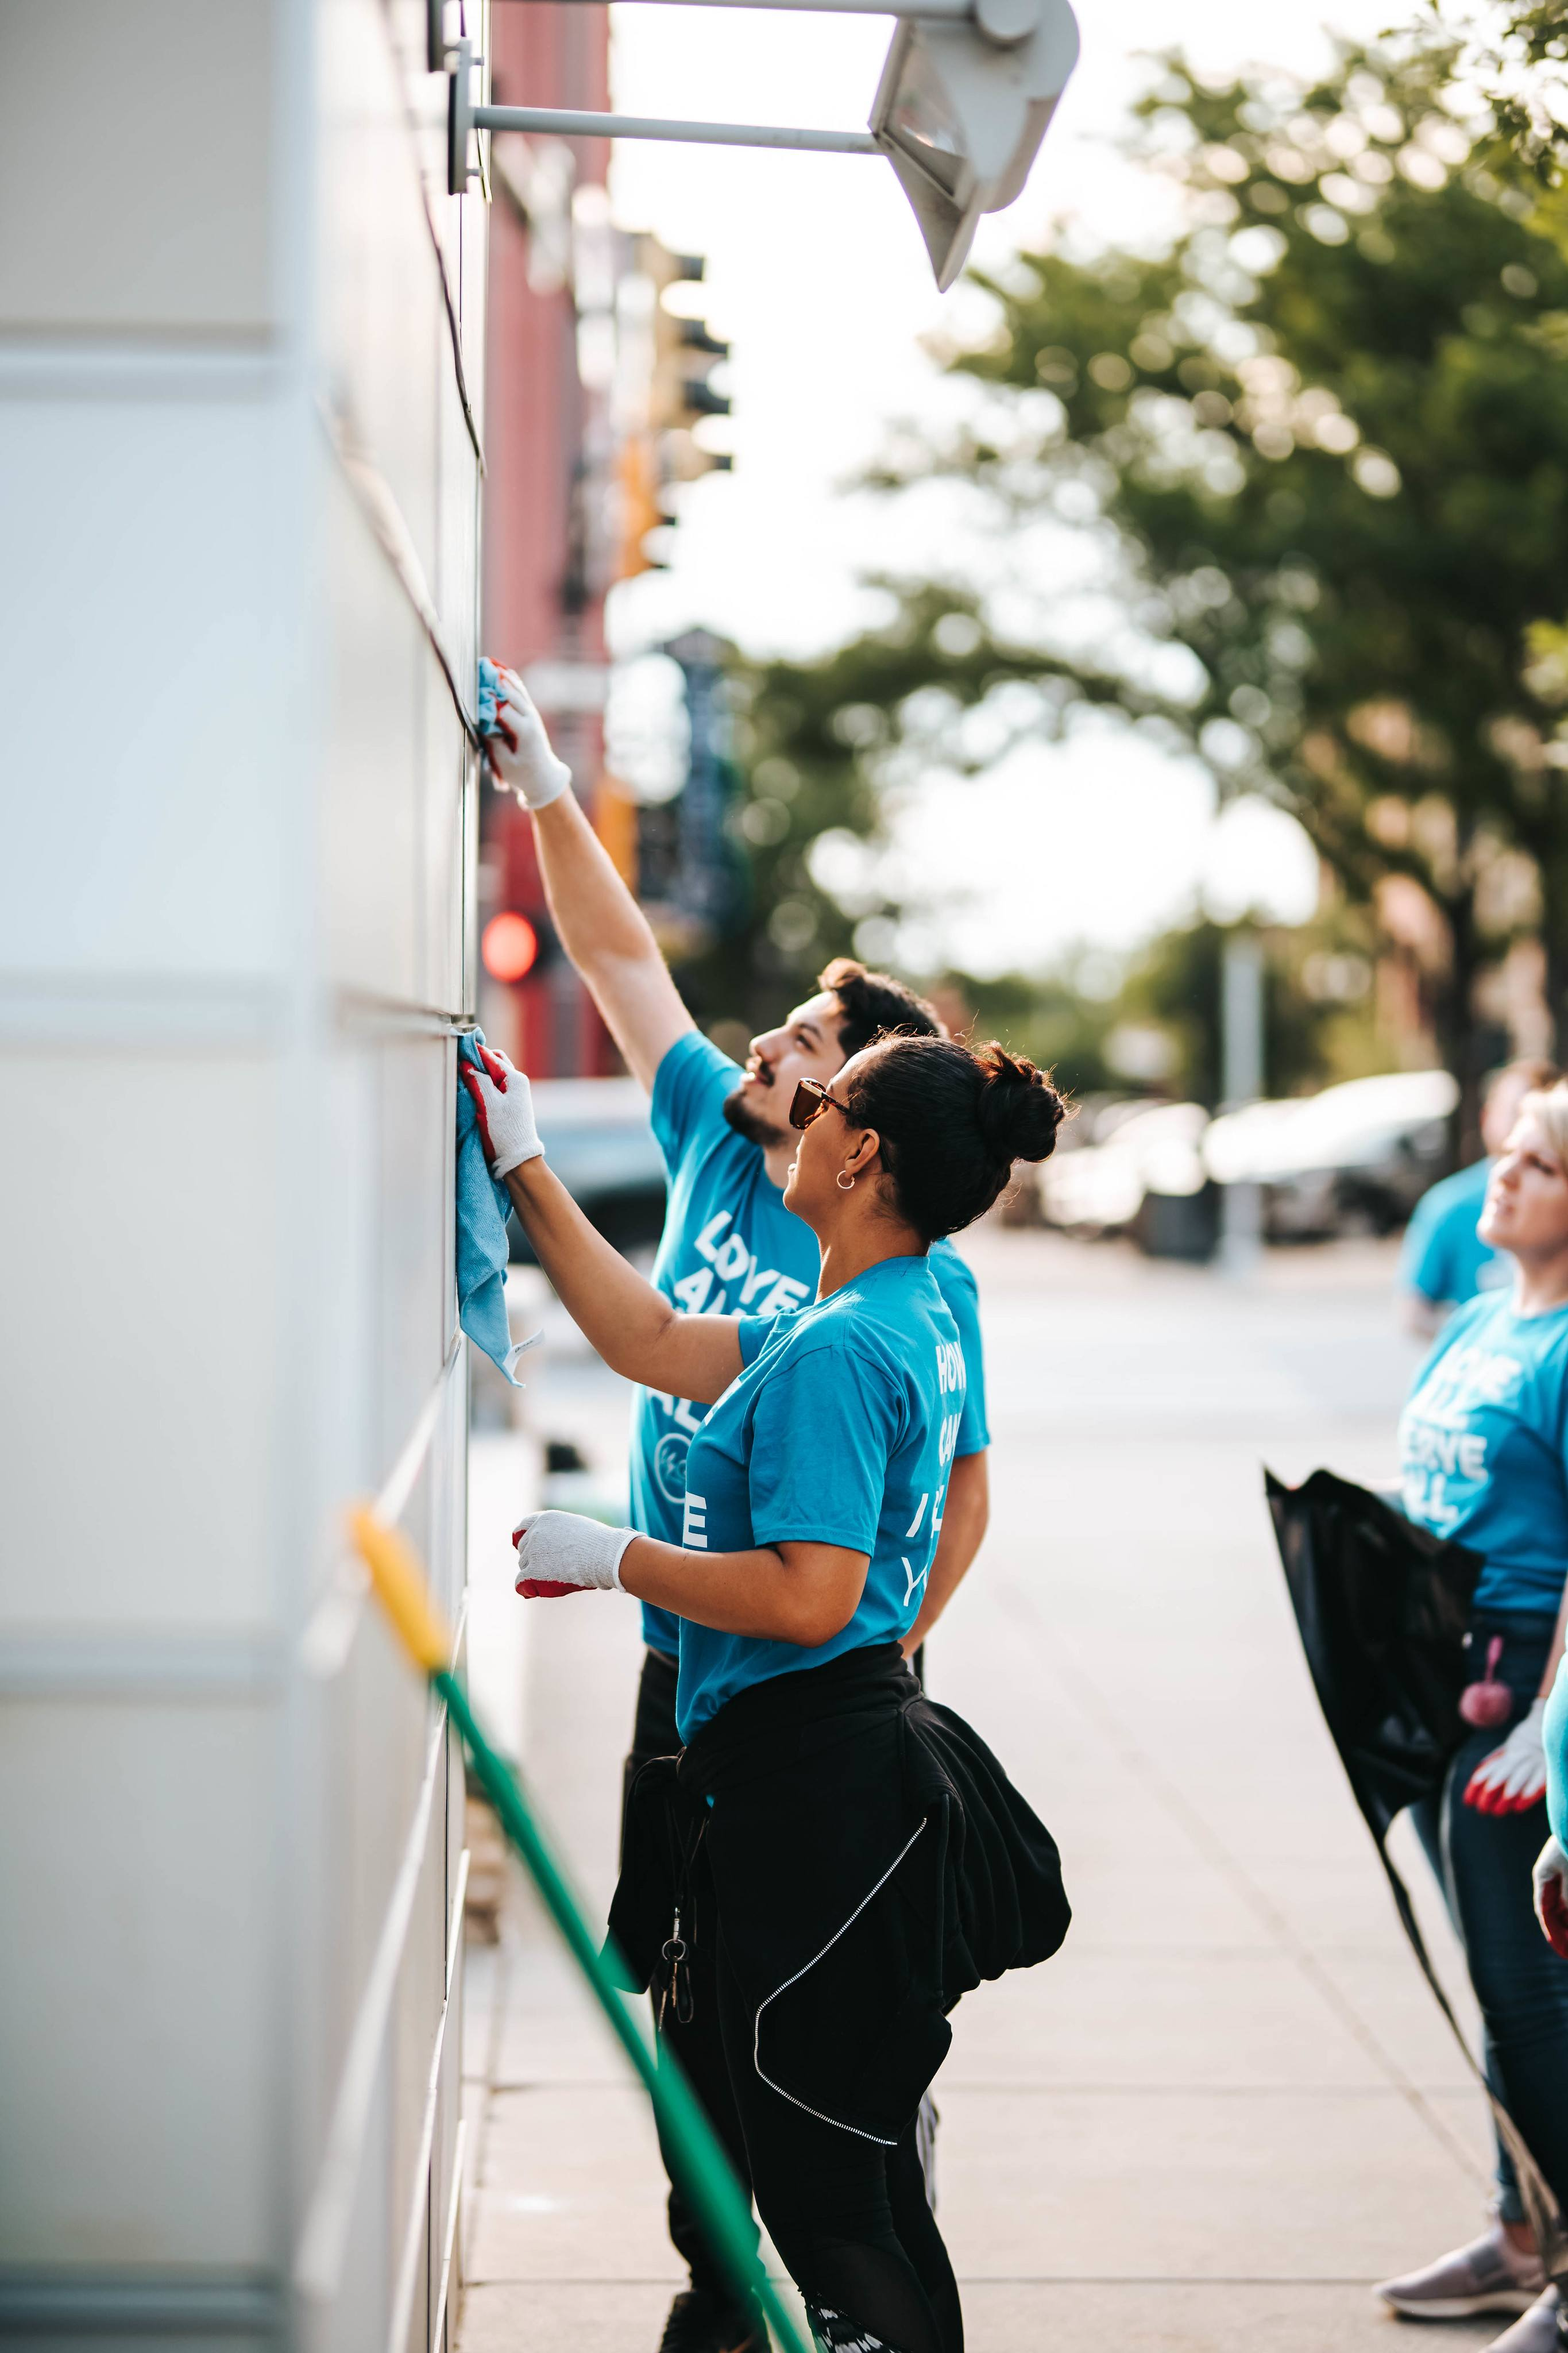 People cleaning graffiti off buildings in Omaha.